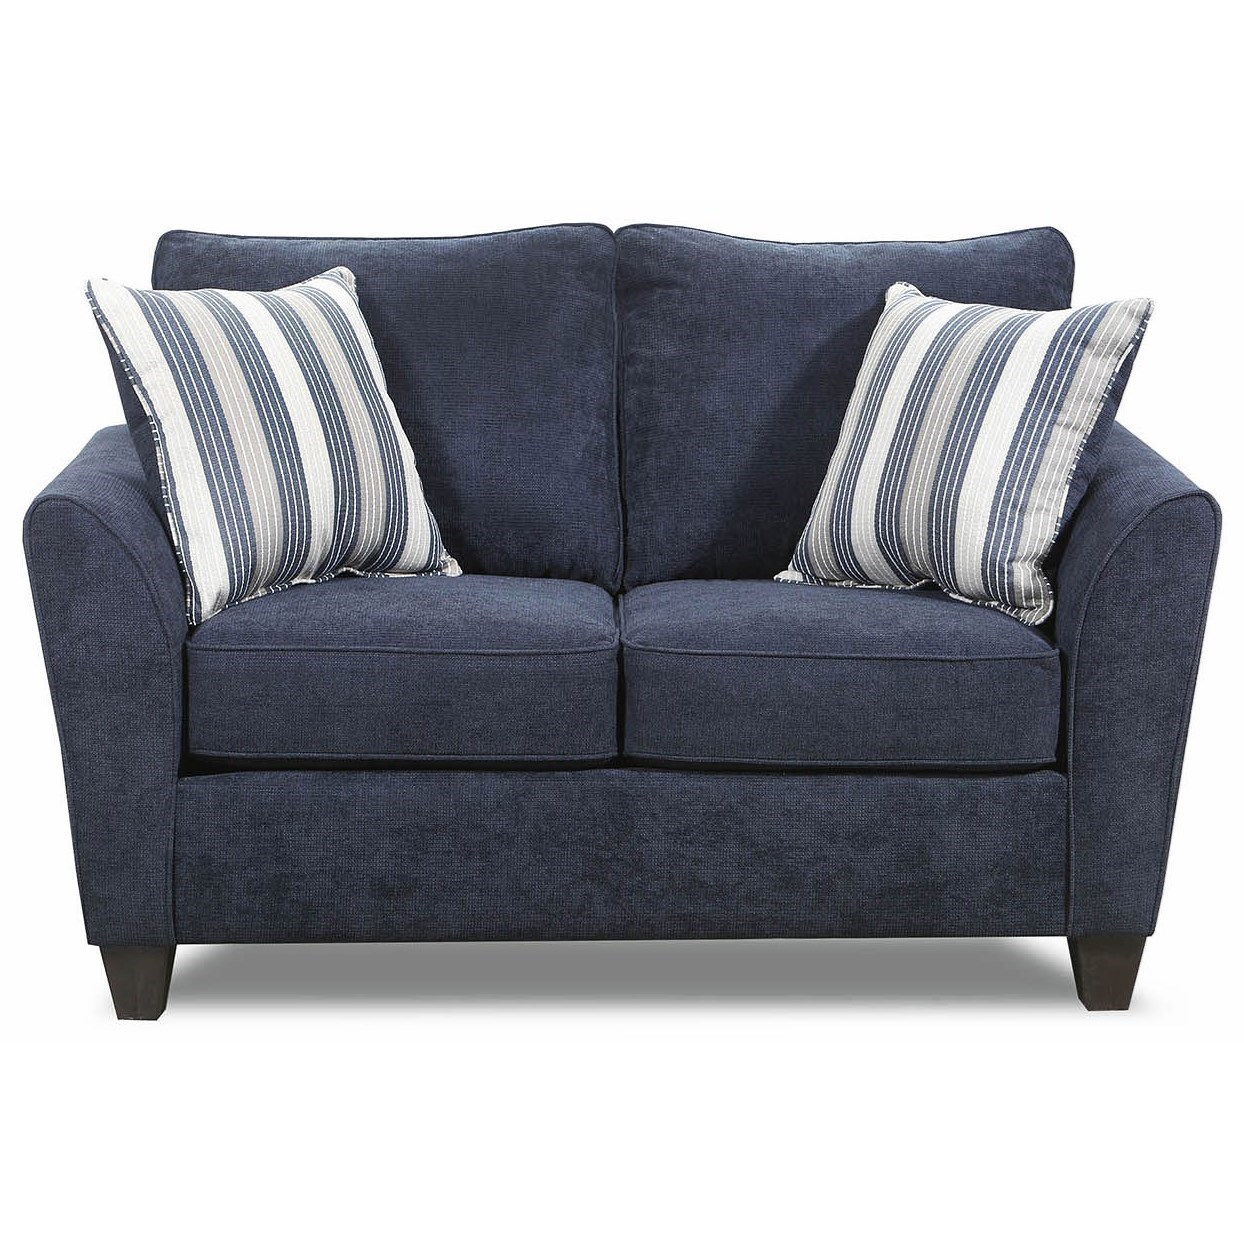 7081 Loveseat by Lane at Esprit Decor Home Furnishings